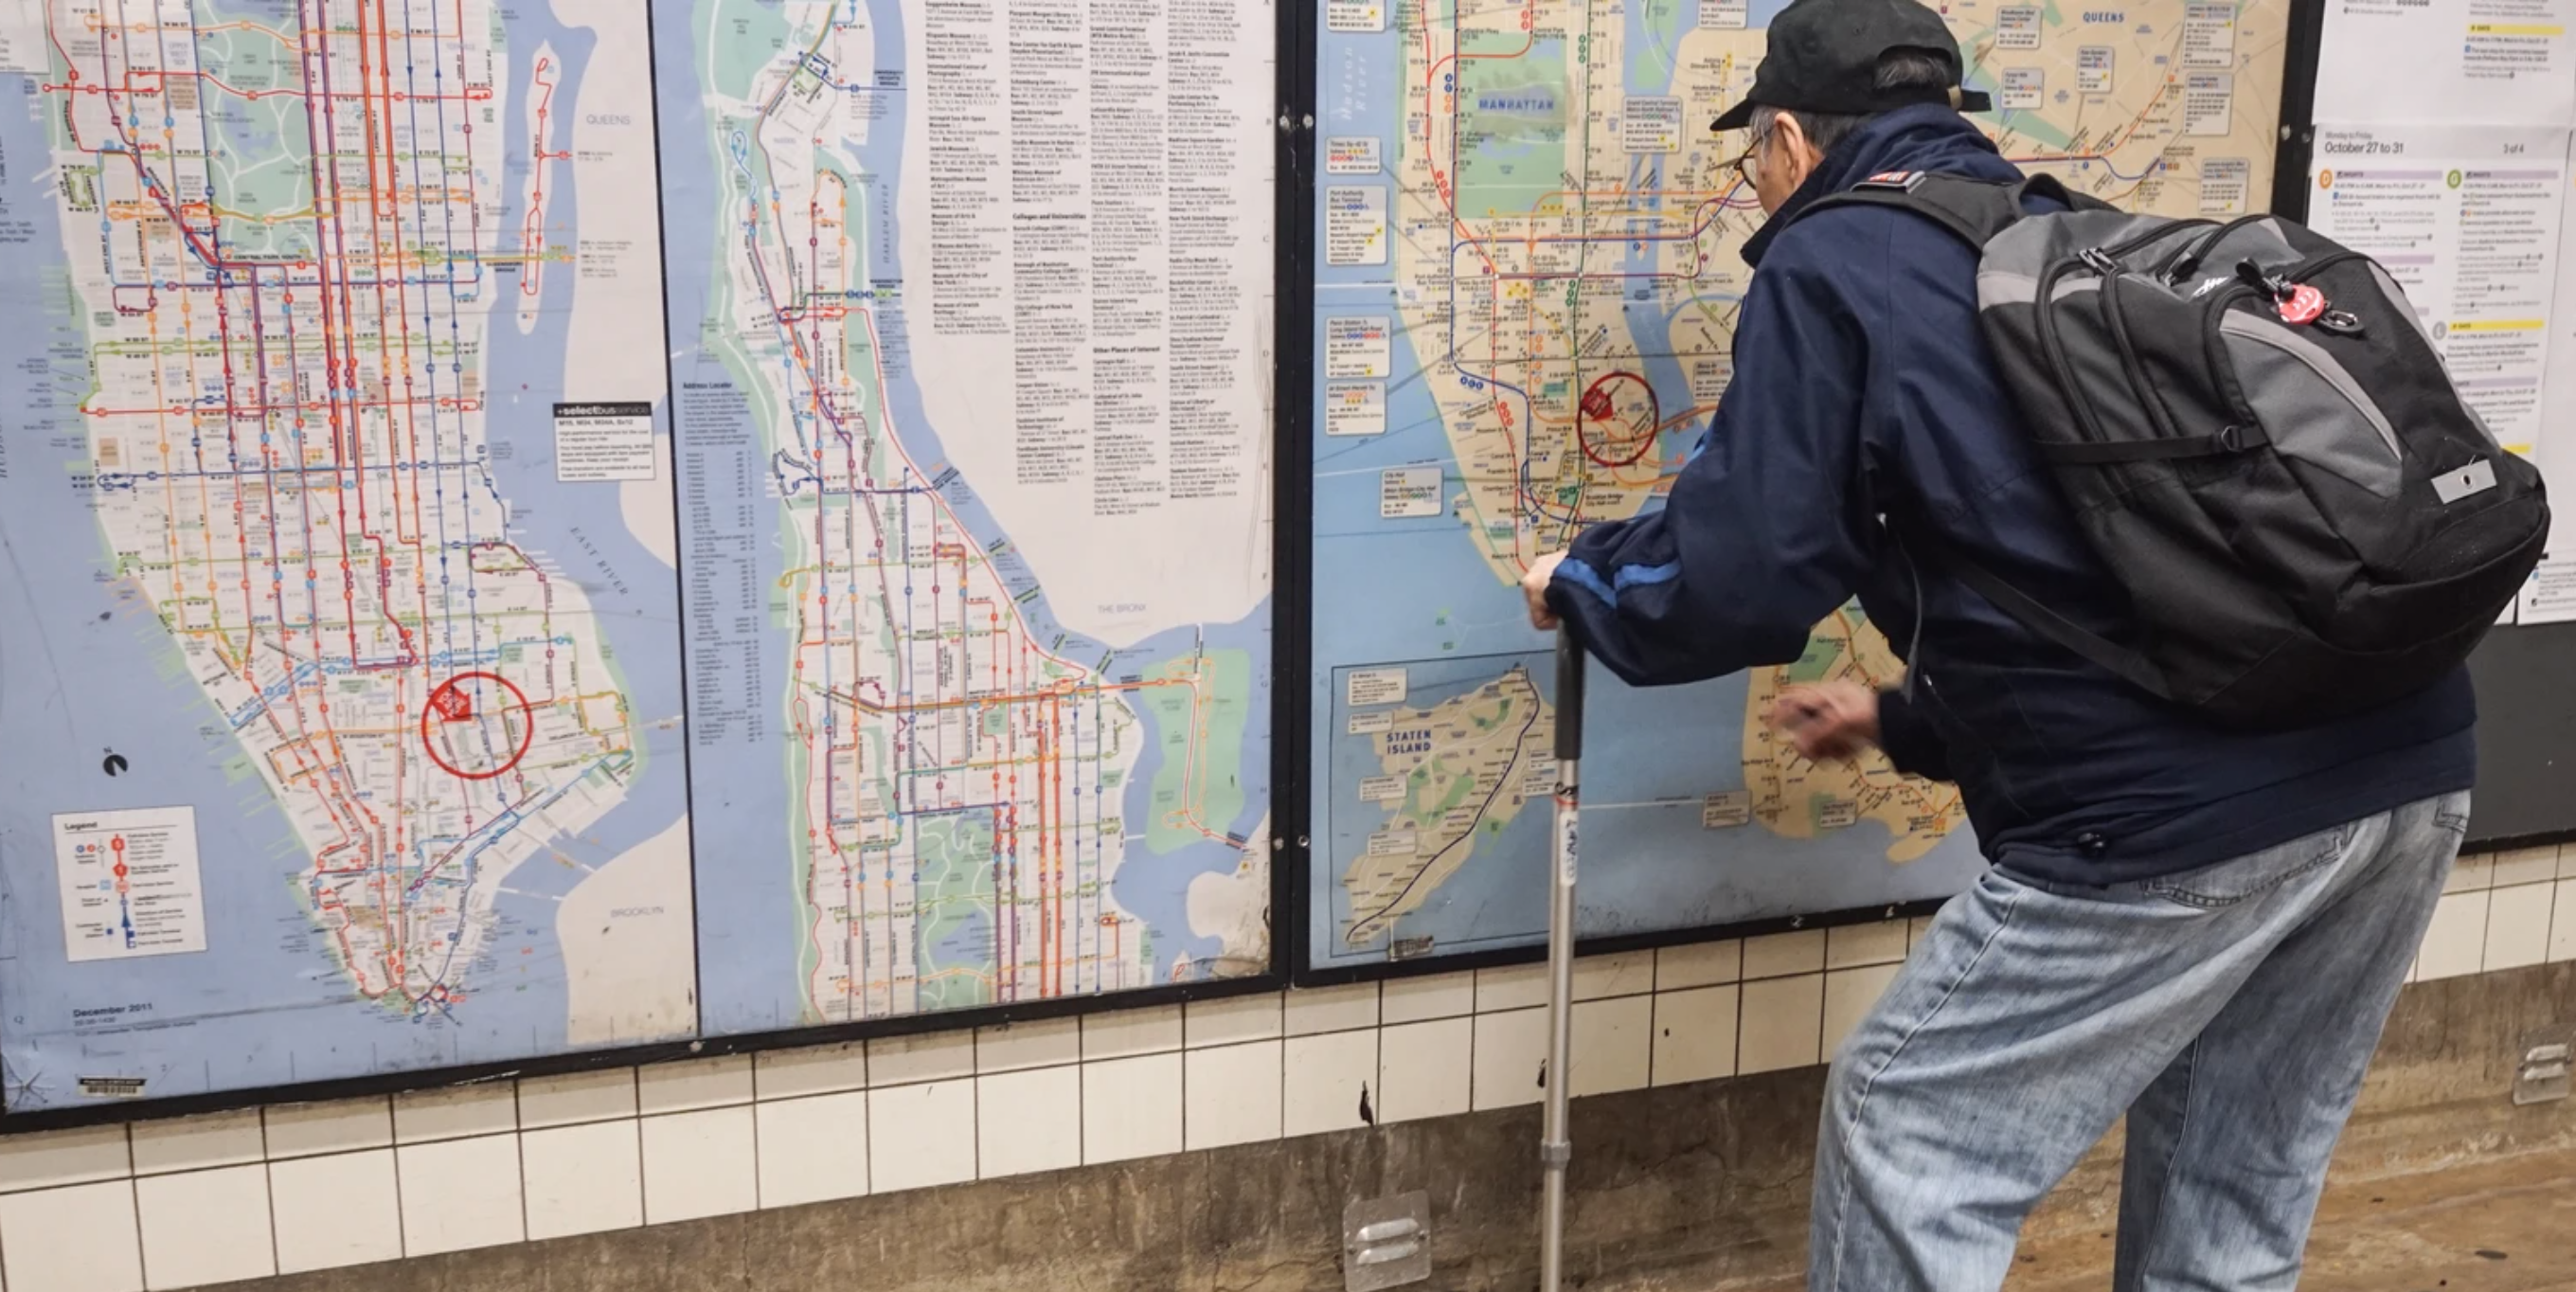 The MTA Is Going After An Etsy Artist Over A New York Subway Map It Didn't Make